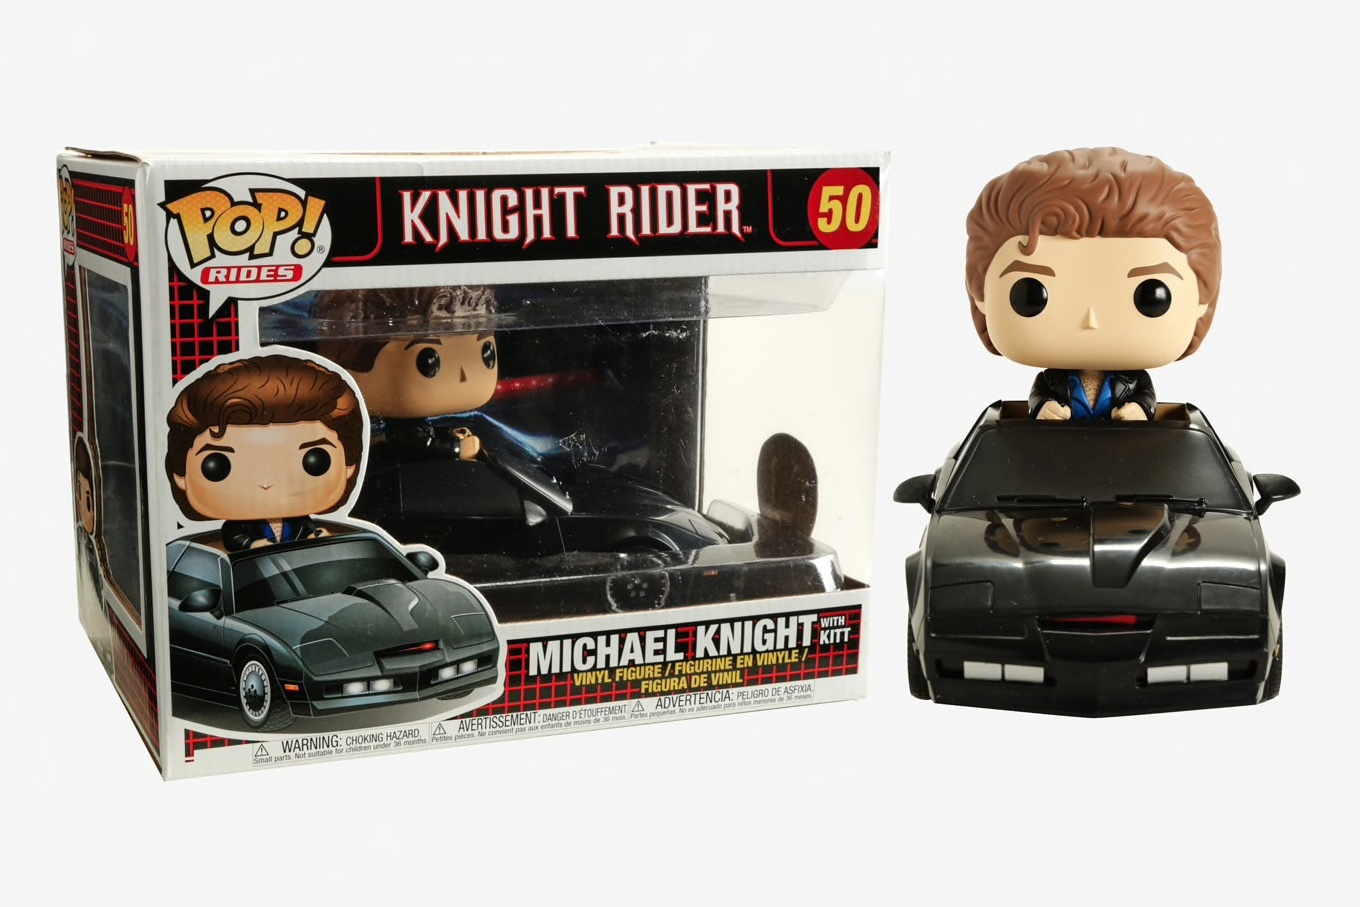 FUNKO POP KNIGHT RIDER #50 MICHAEL KNIGHT + KITT MOVIES